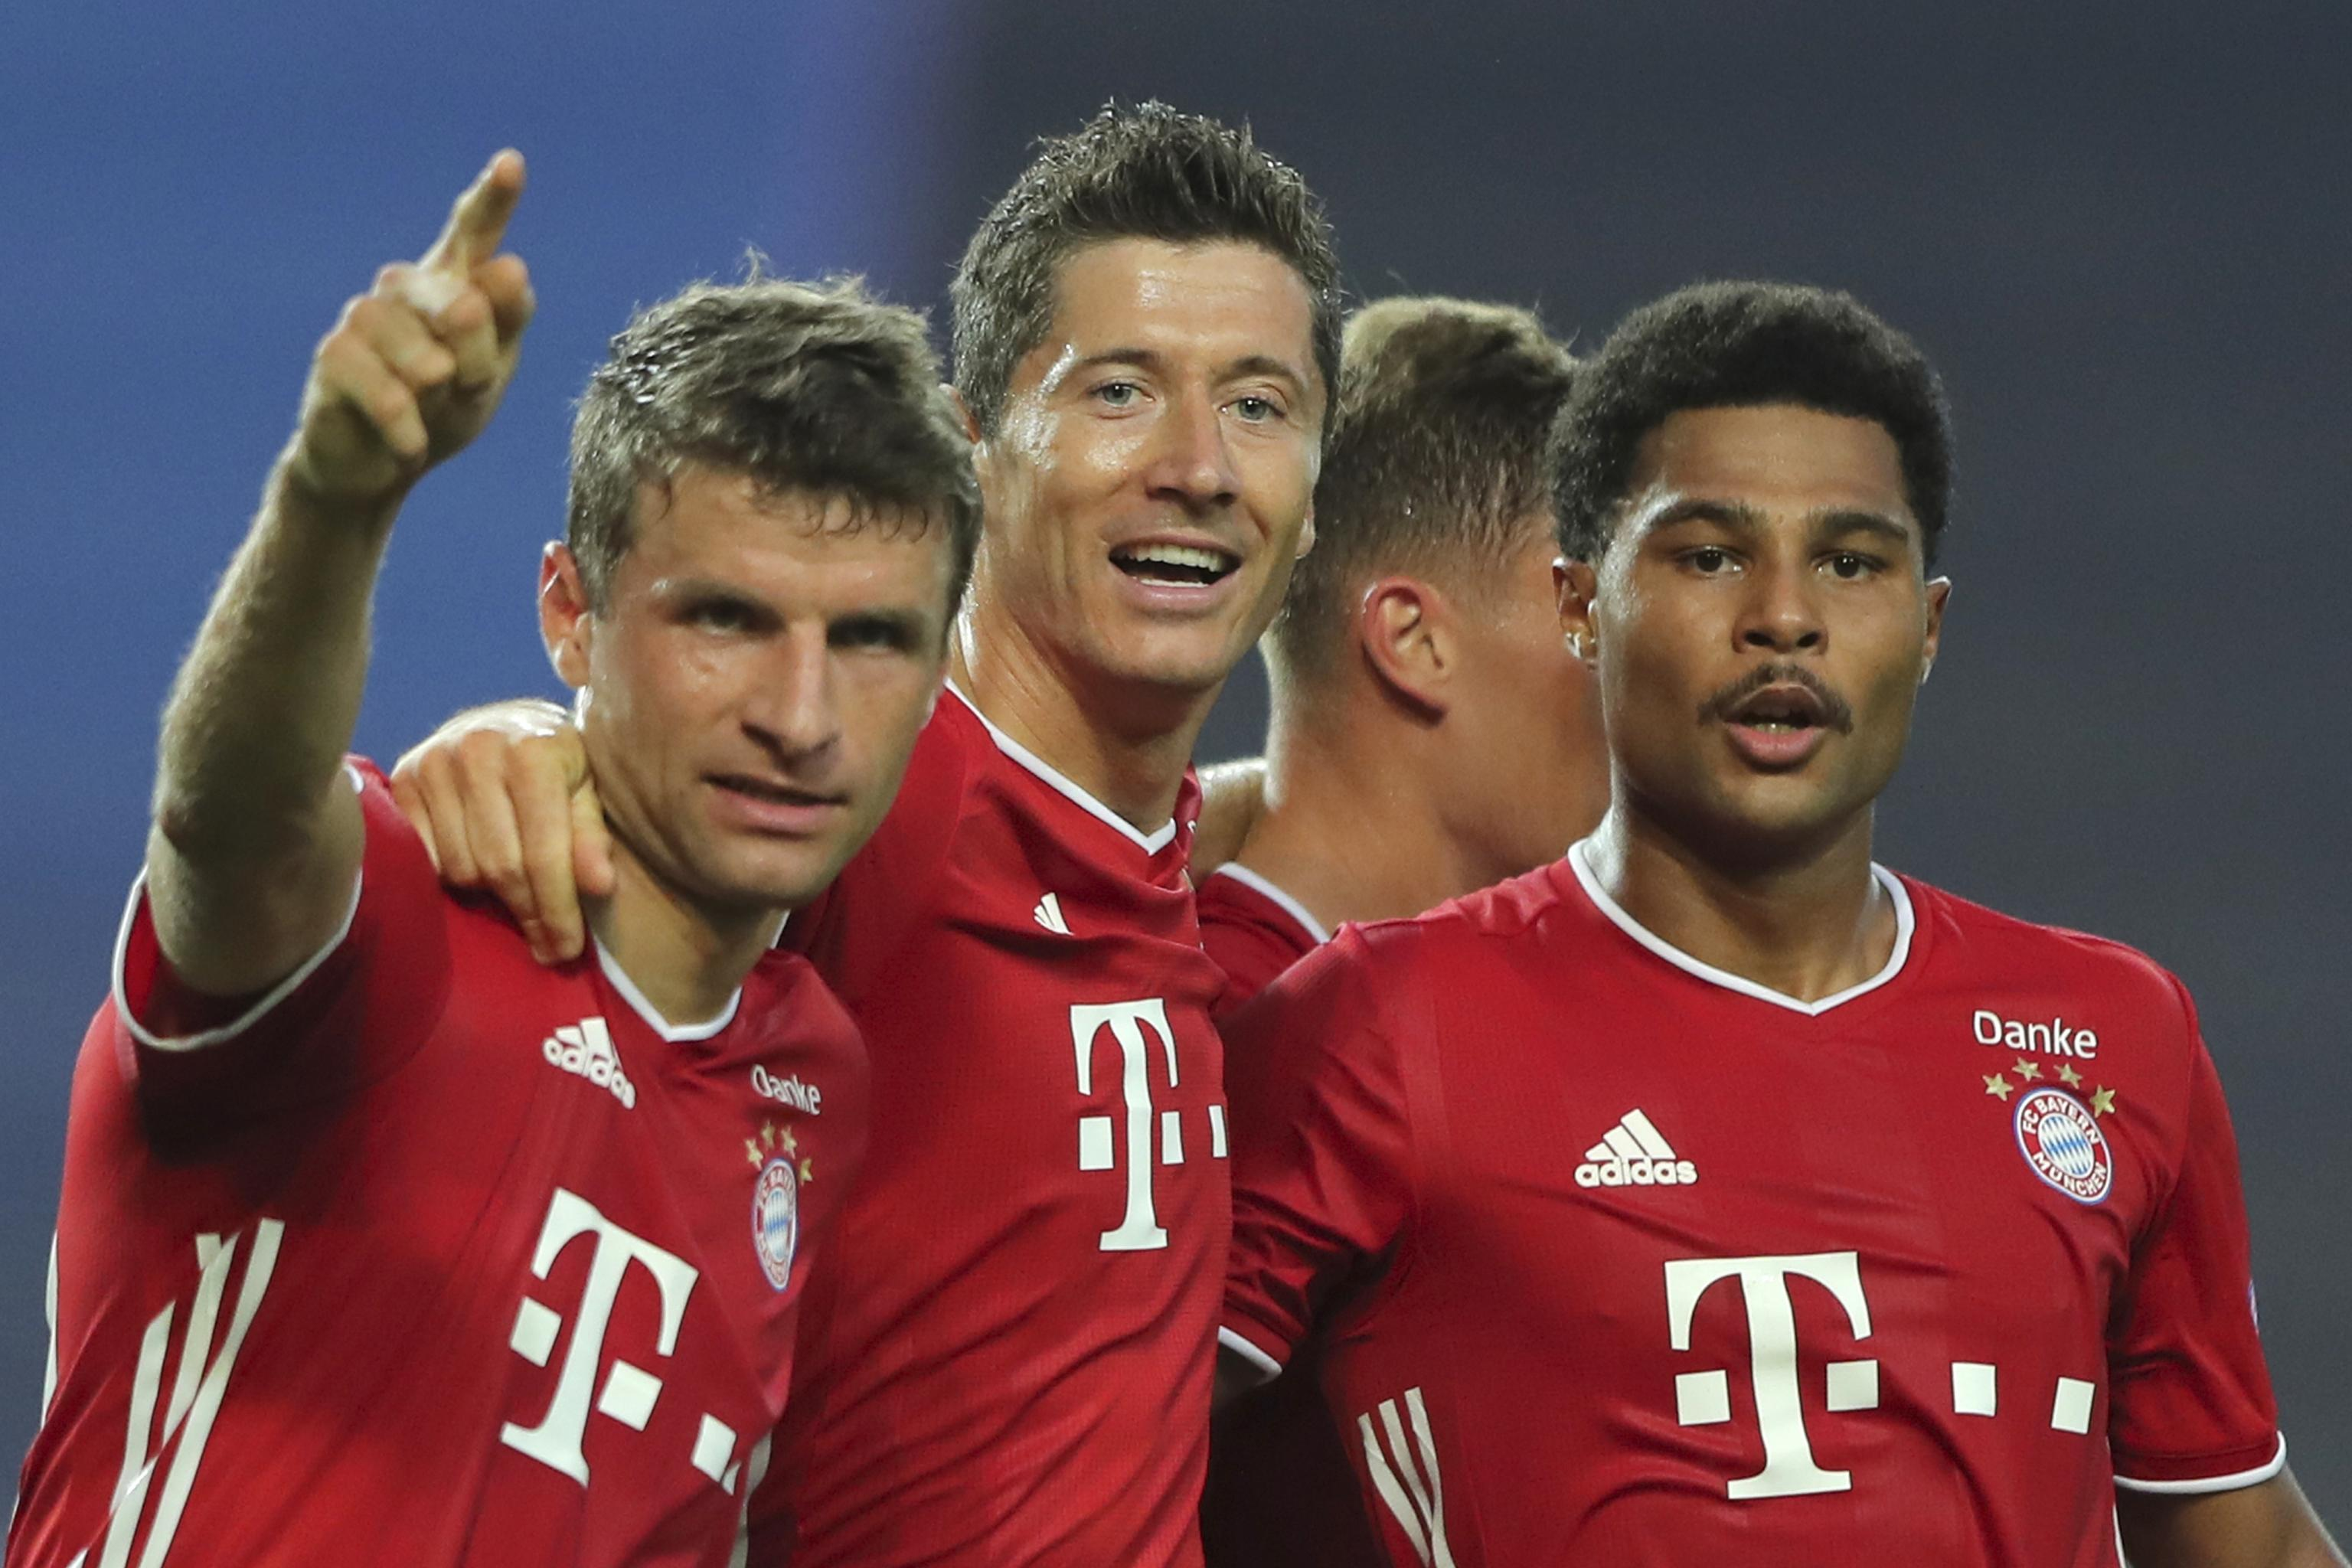 Psg Vs Bayern Munich Odds Preview Live Stream Tv Info For Ucl Final Bleacher Report Latest News Videos And Highlights